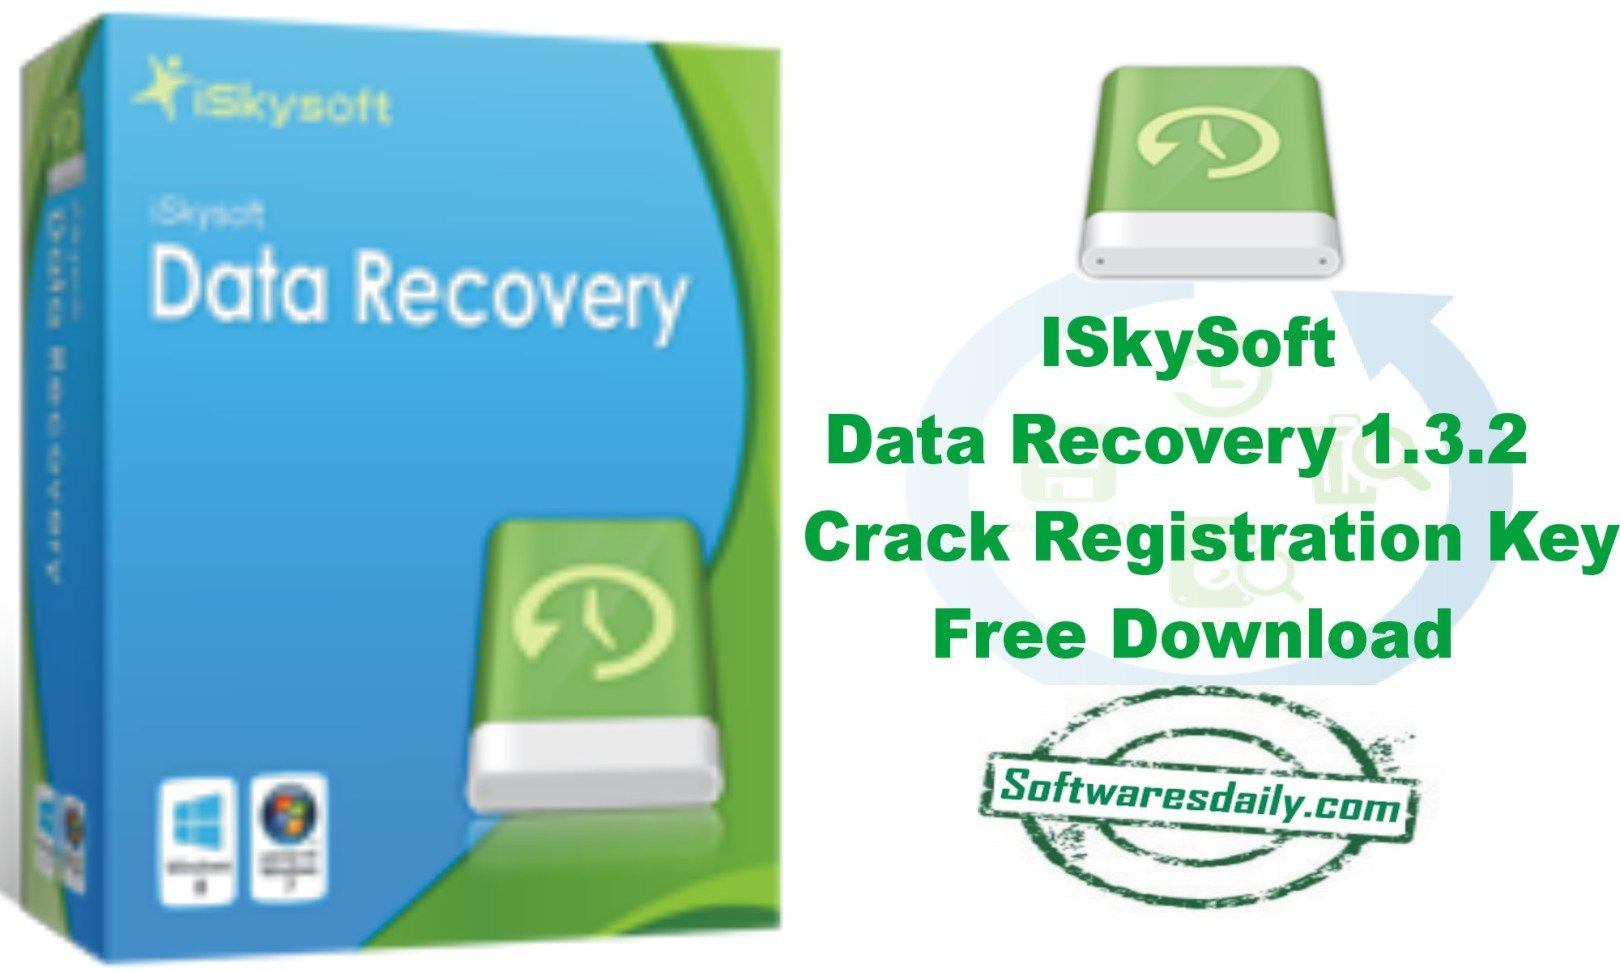 iskysoft android data recovery licensed email and registration code